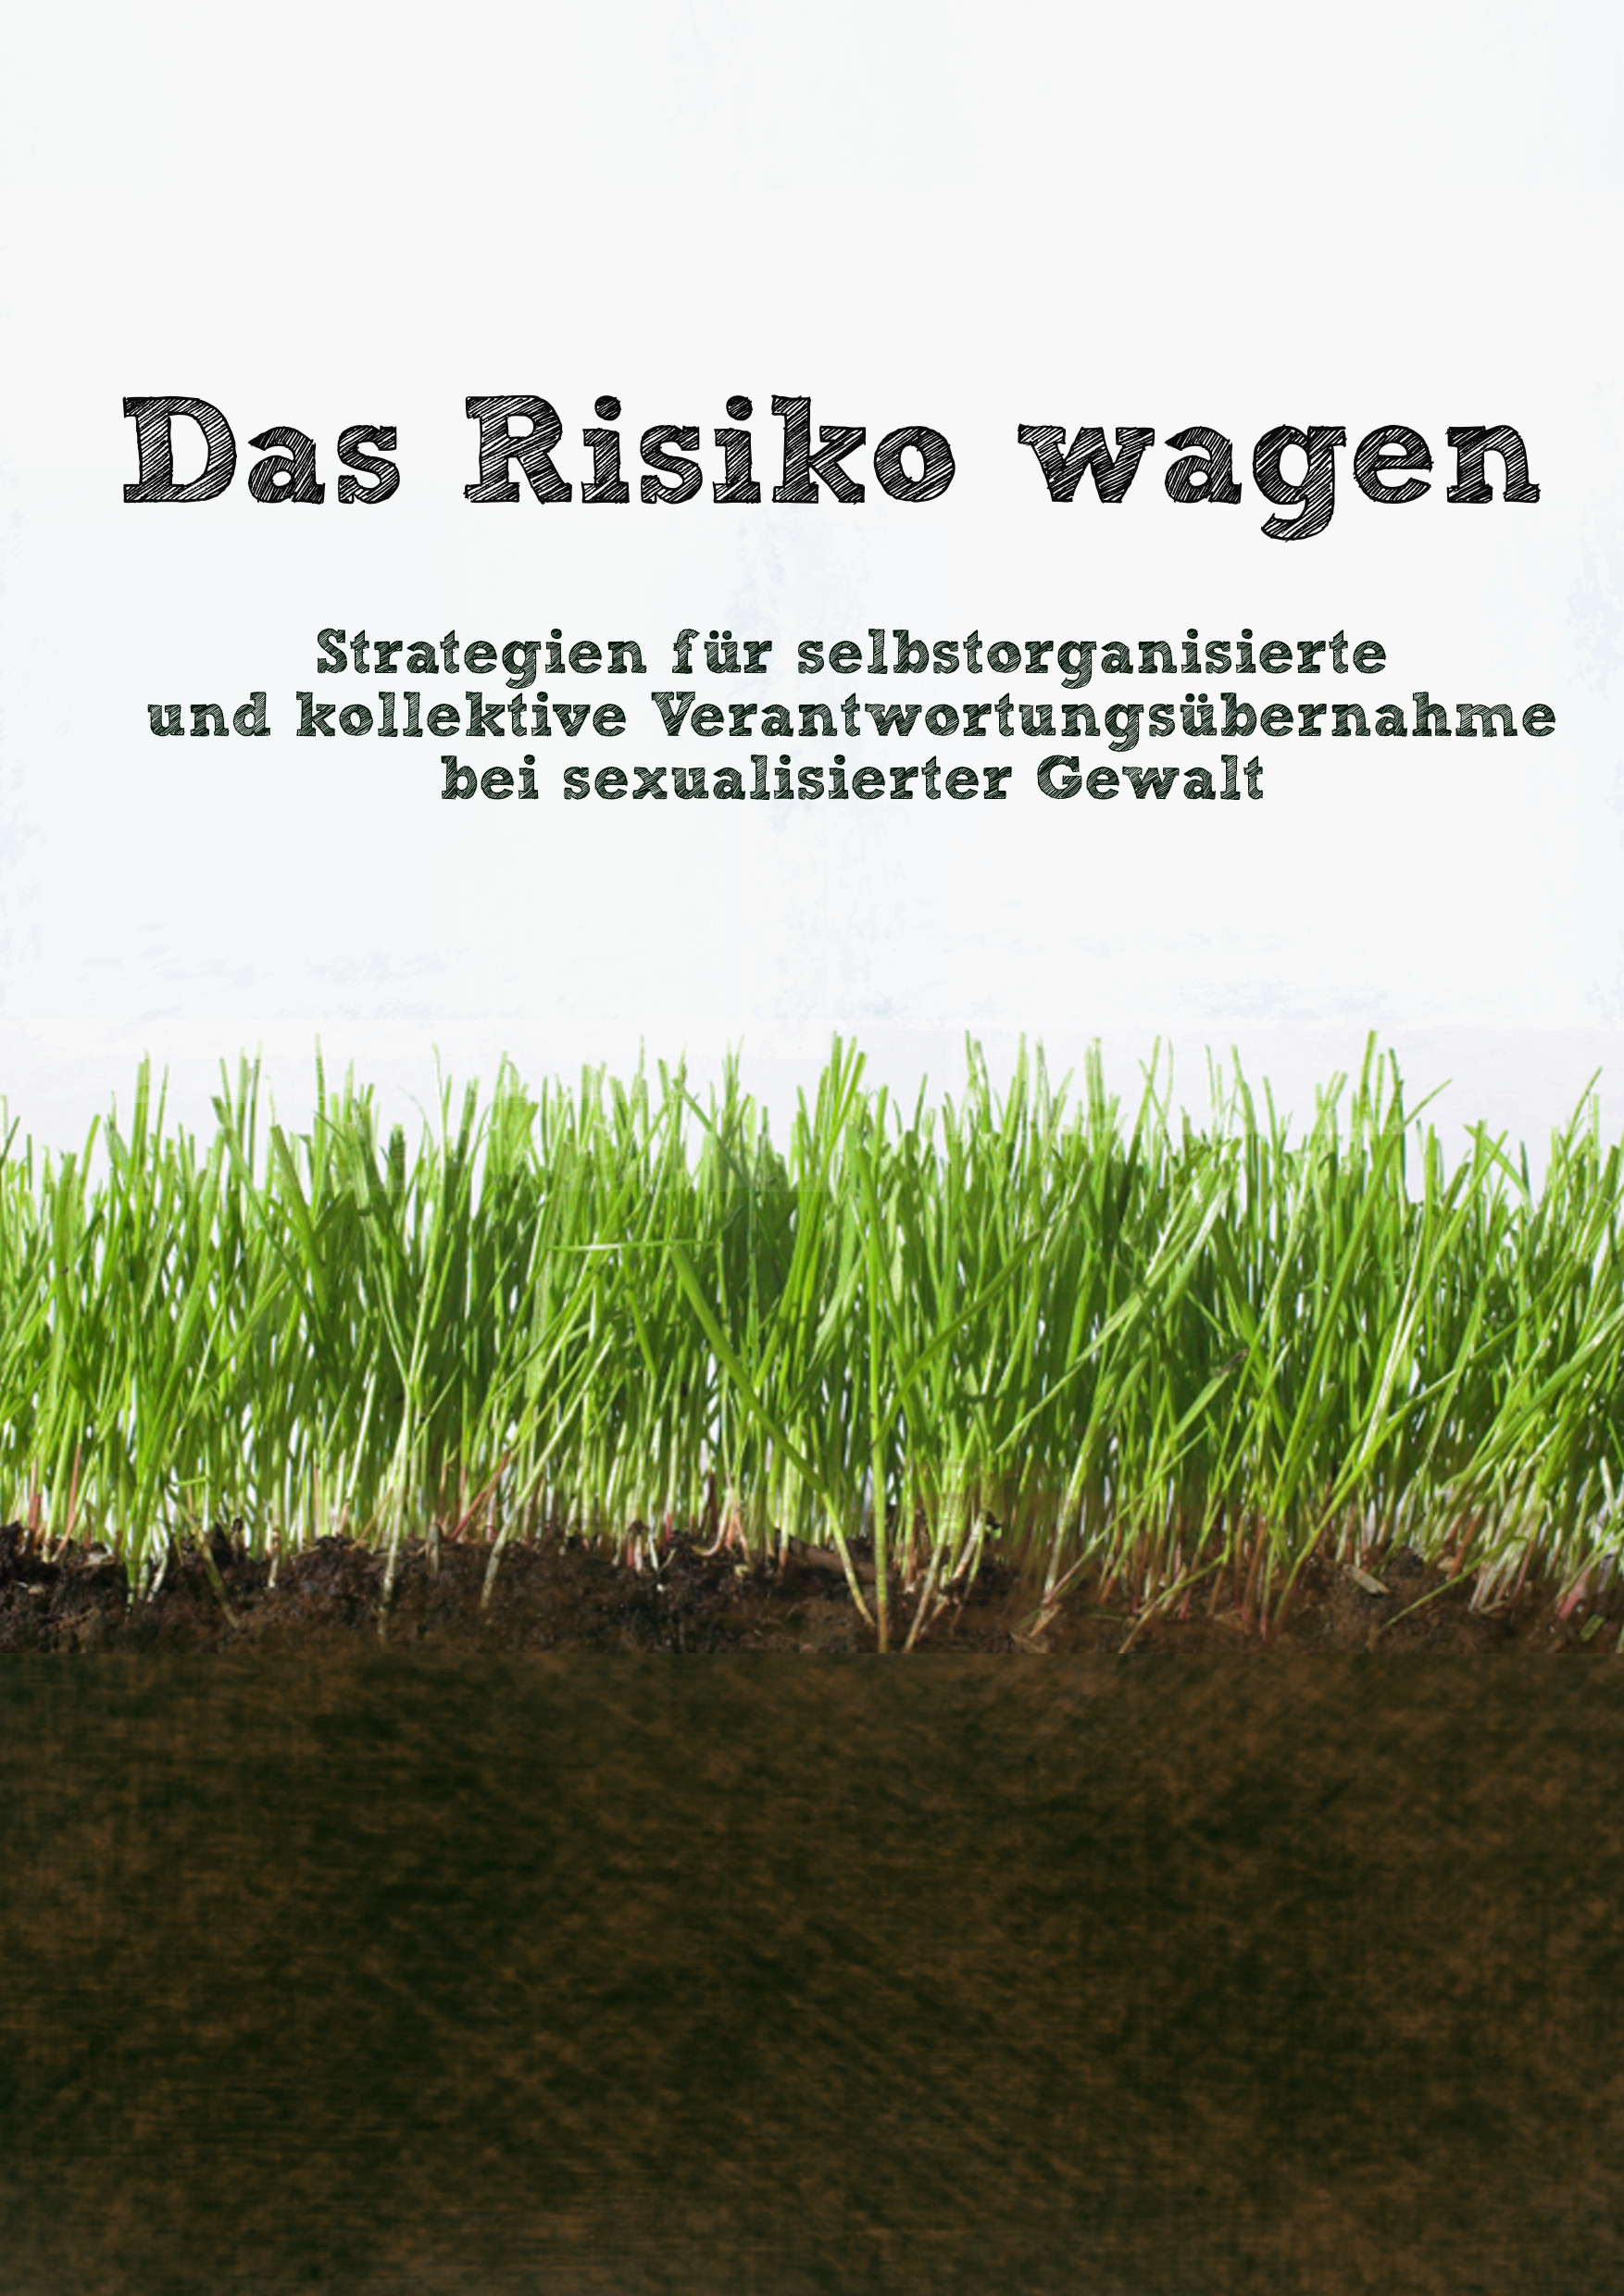 "image of grass, above the title of the zine in German: ""Das Risiko wagen. Strategien für selbstorganisierte und kollektive Verantwortungsübernahme bei sexualisierter Gewalt"""